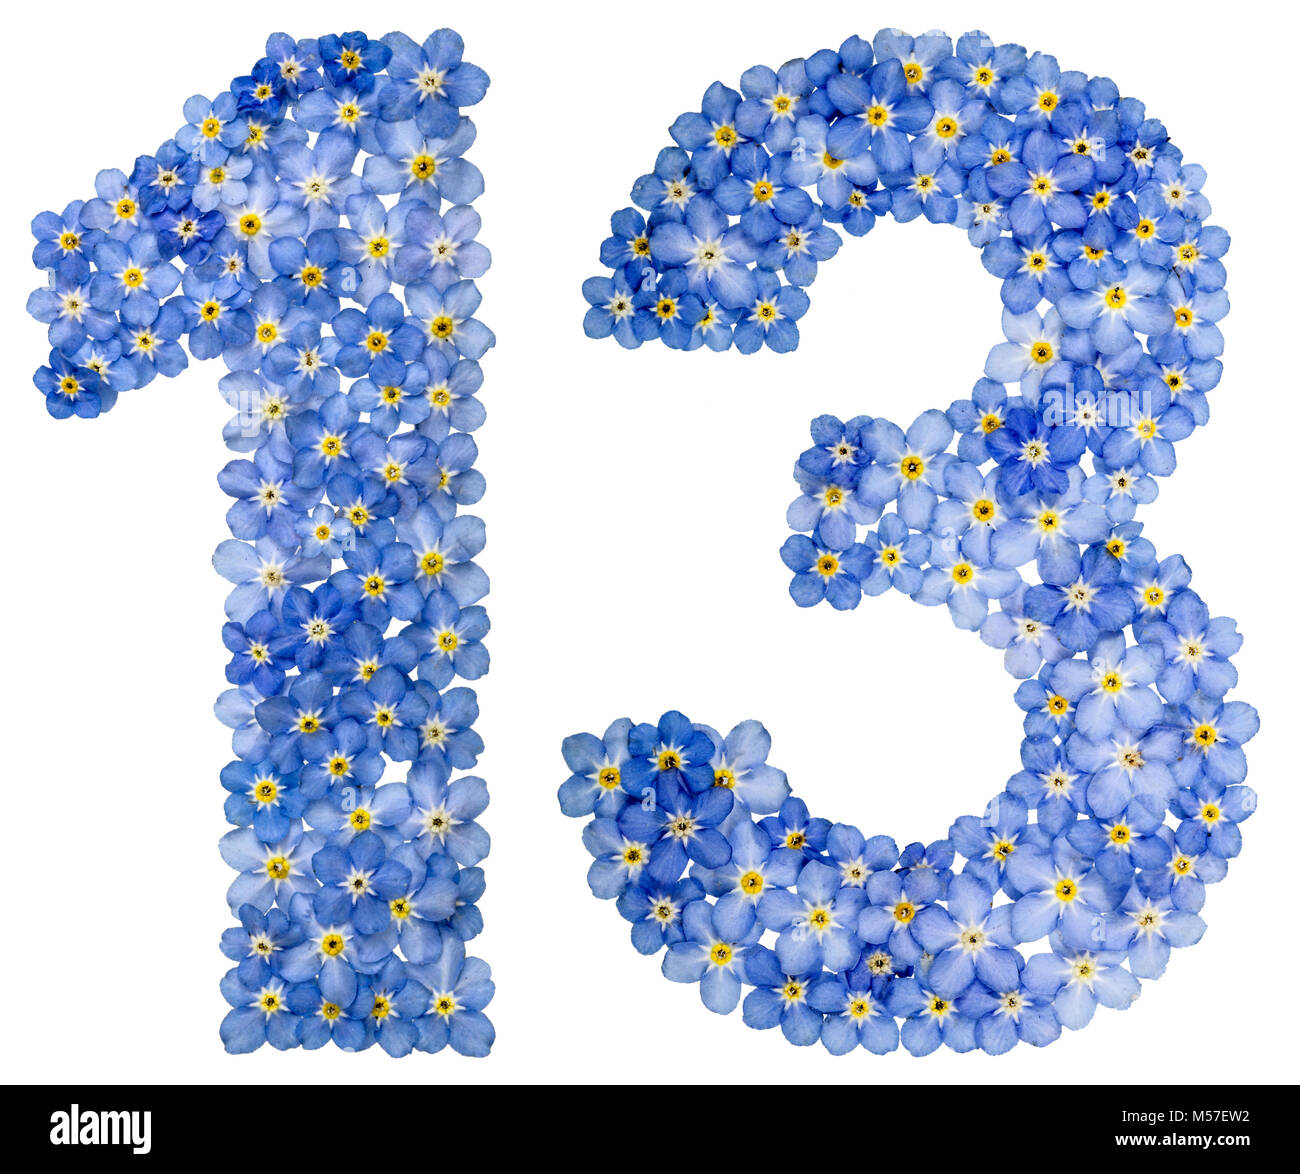 Arabic numeral 13, thirteen, from blue forget-me-not flowers - Stock Image